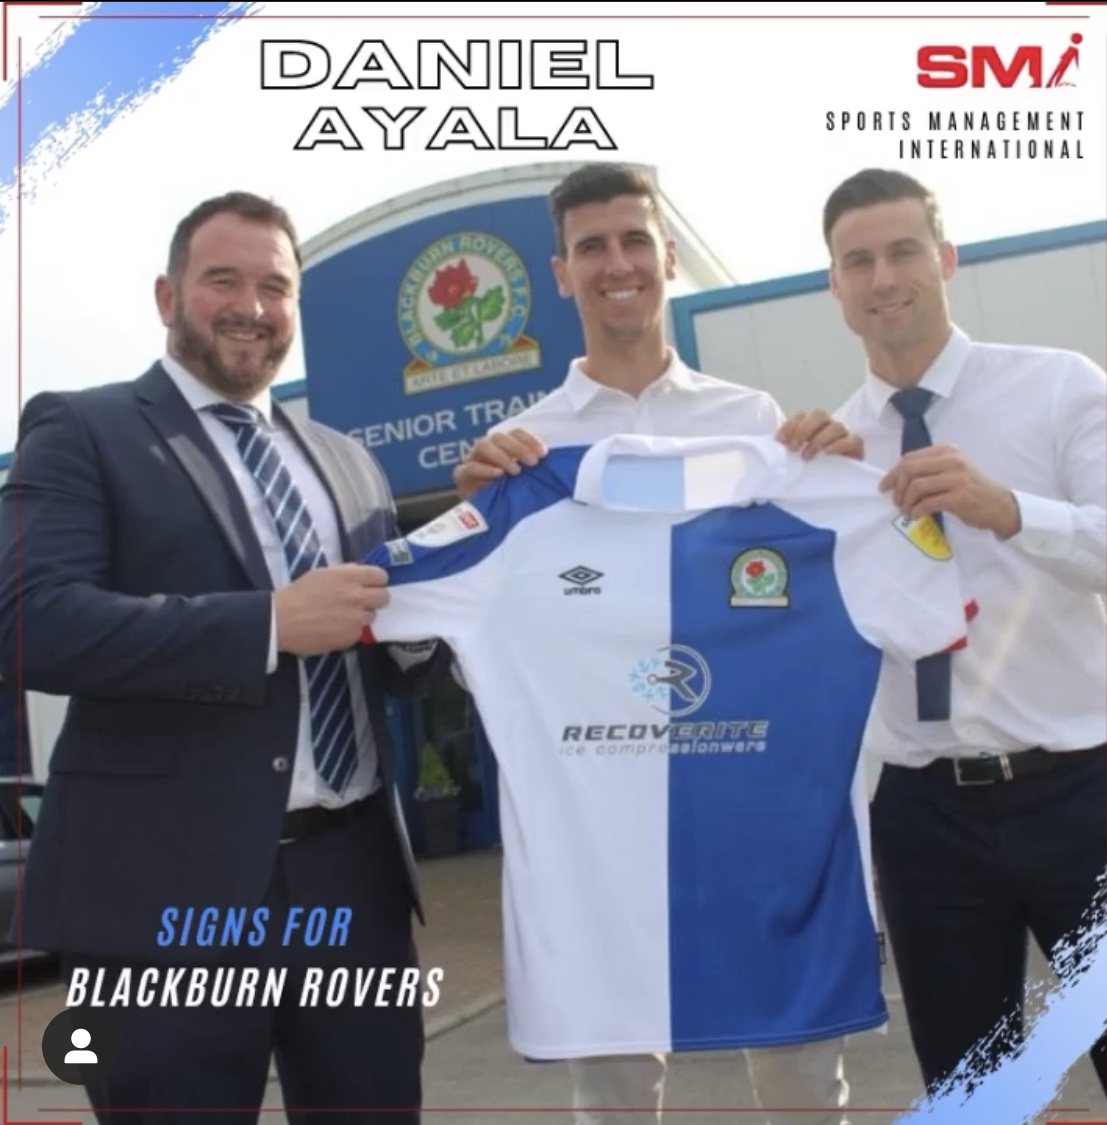 Daniel Ayala signs for Blackburn Rovers